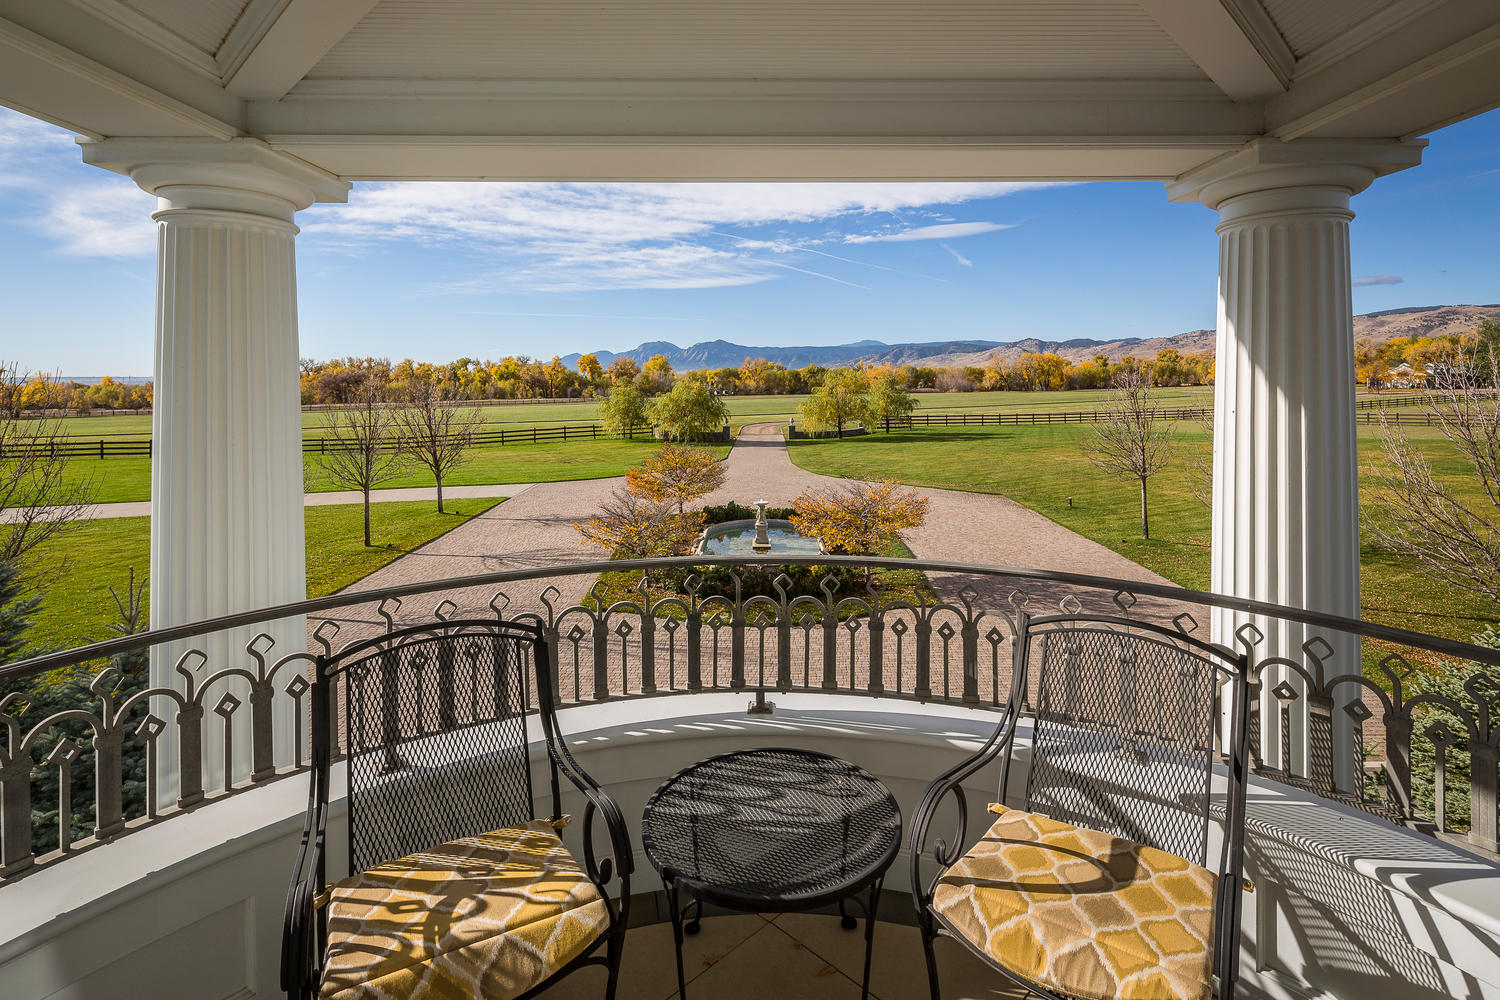 Additional photo for property listing at Finest Residential and Recreational Estate for sale on Colorado's Front Range 7484 North 49th Street Longmont, Colorado 80503 United States